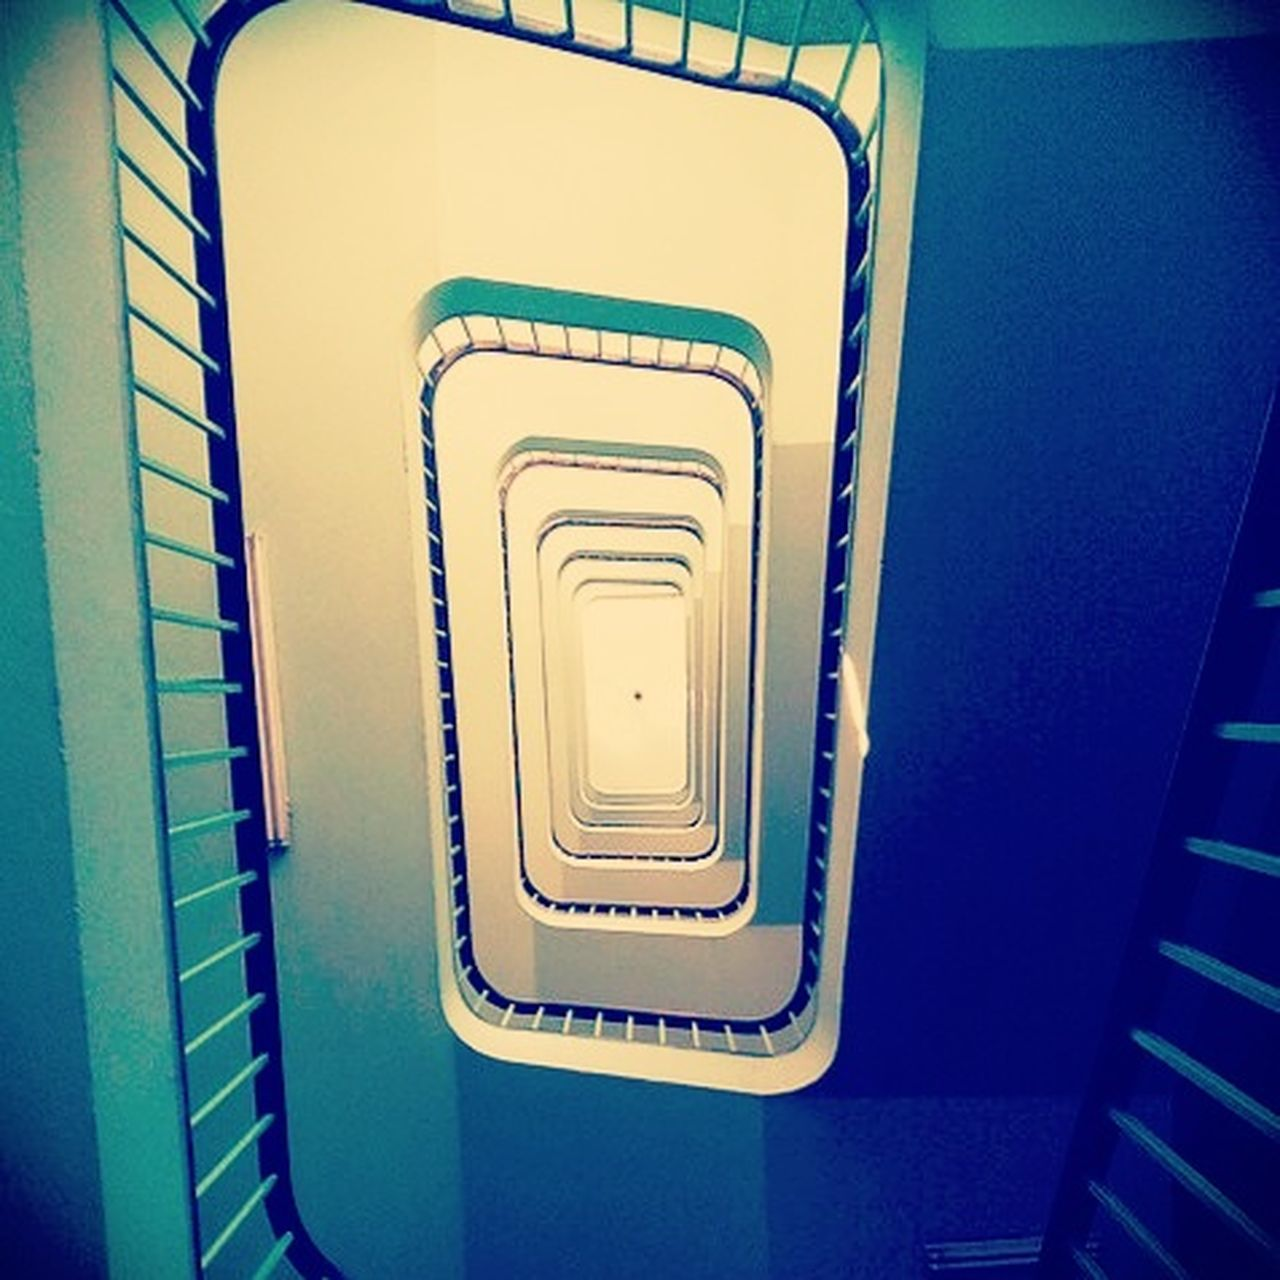 Stairs Staircase Steps And Staircases Spiral Built Structure Architecture No People Curved Stairs Up GrungeStyle The Architect - 2017 EyeEm Awards